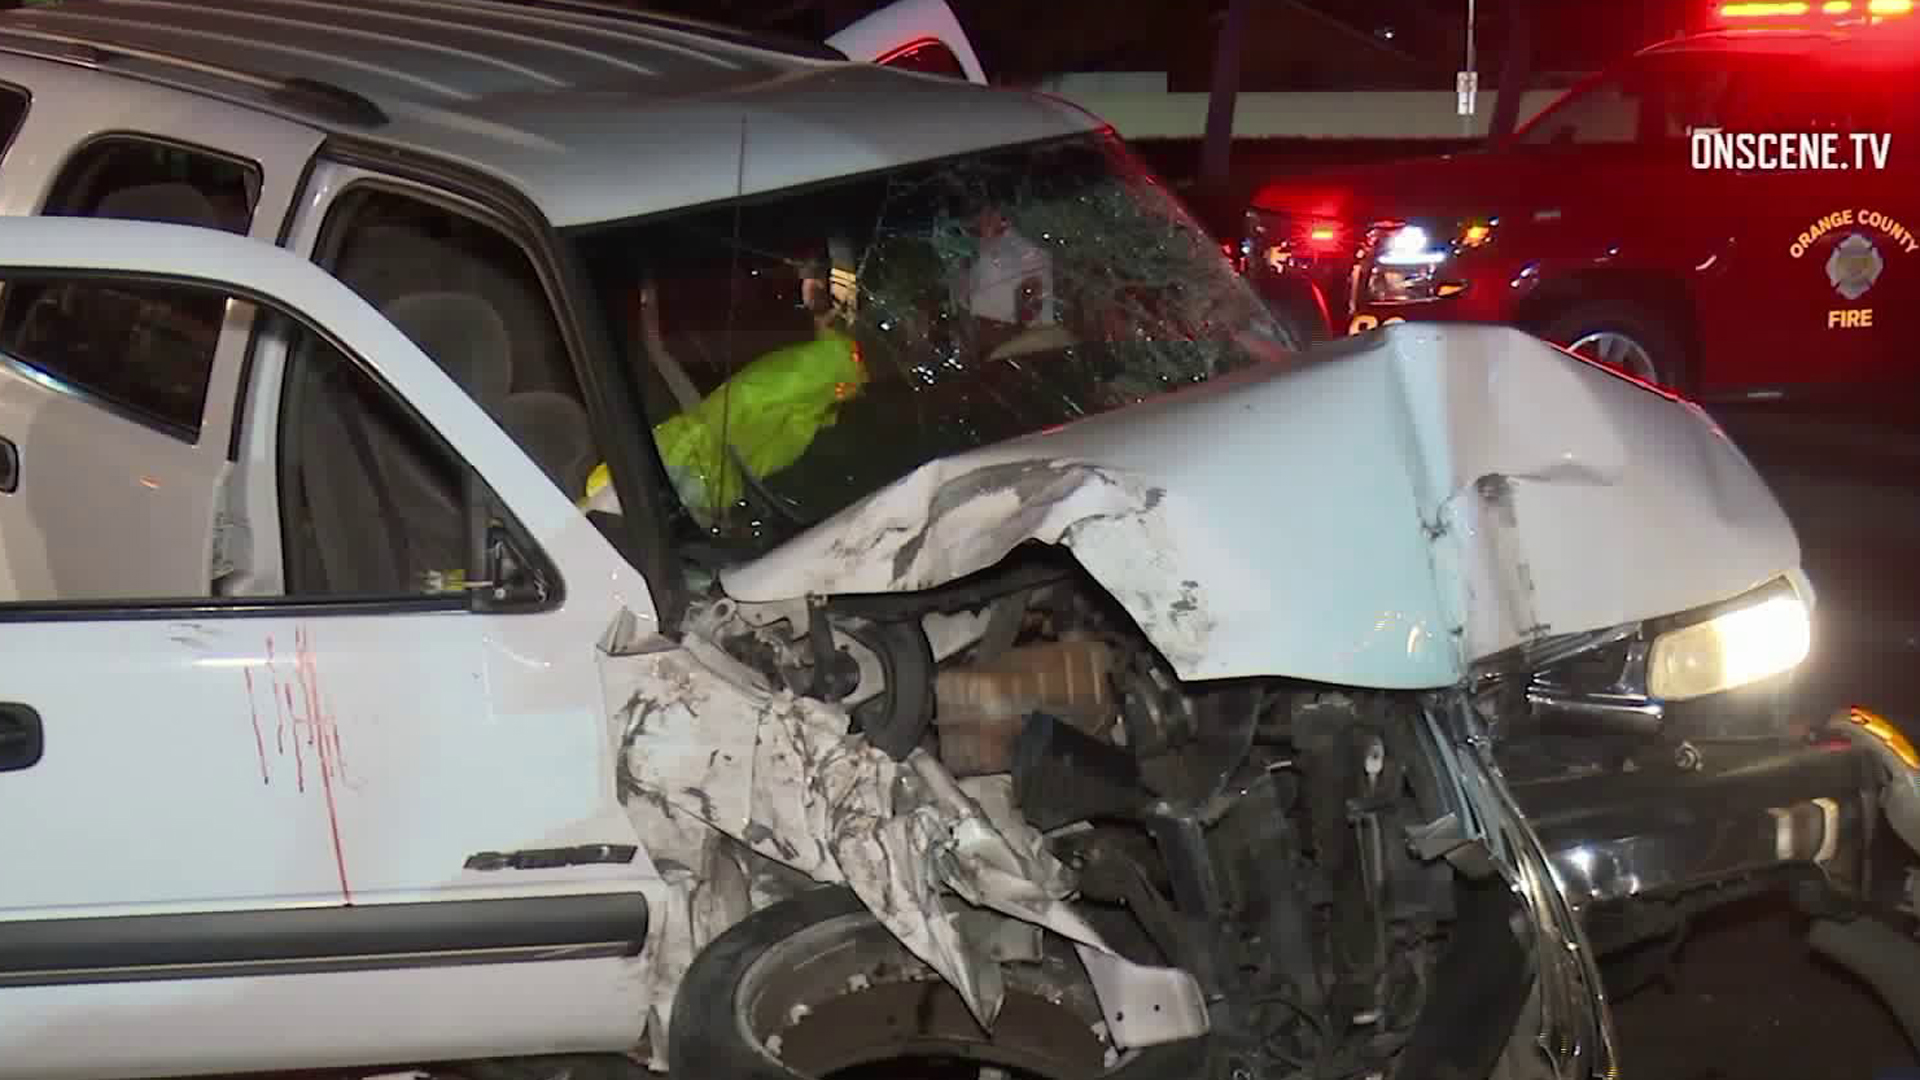 The scene of a crash in Fountain Valley involving a teen driver is seen on April 5, 2019. (Credit: Onscene.TV)